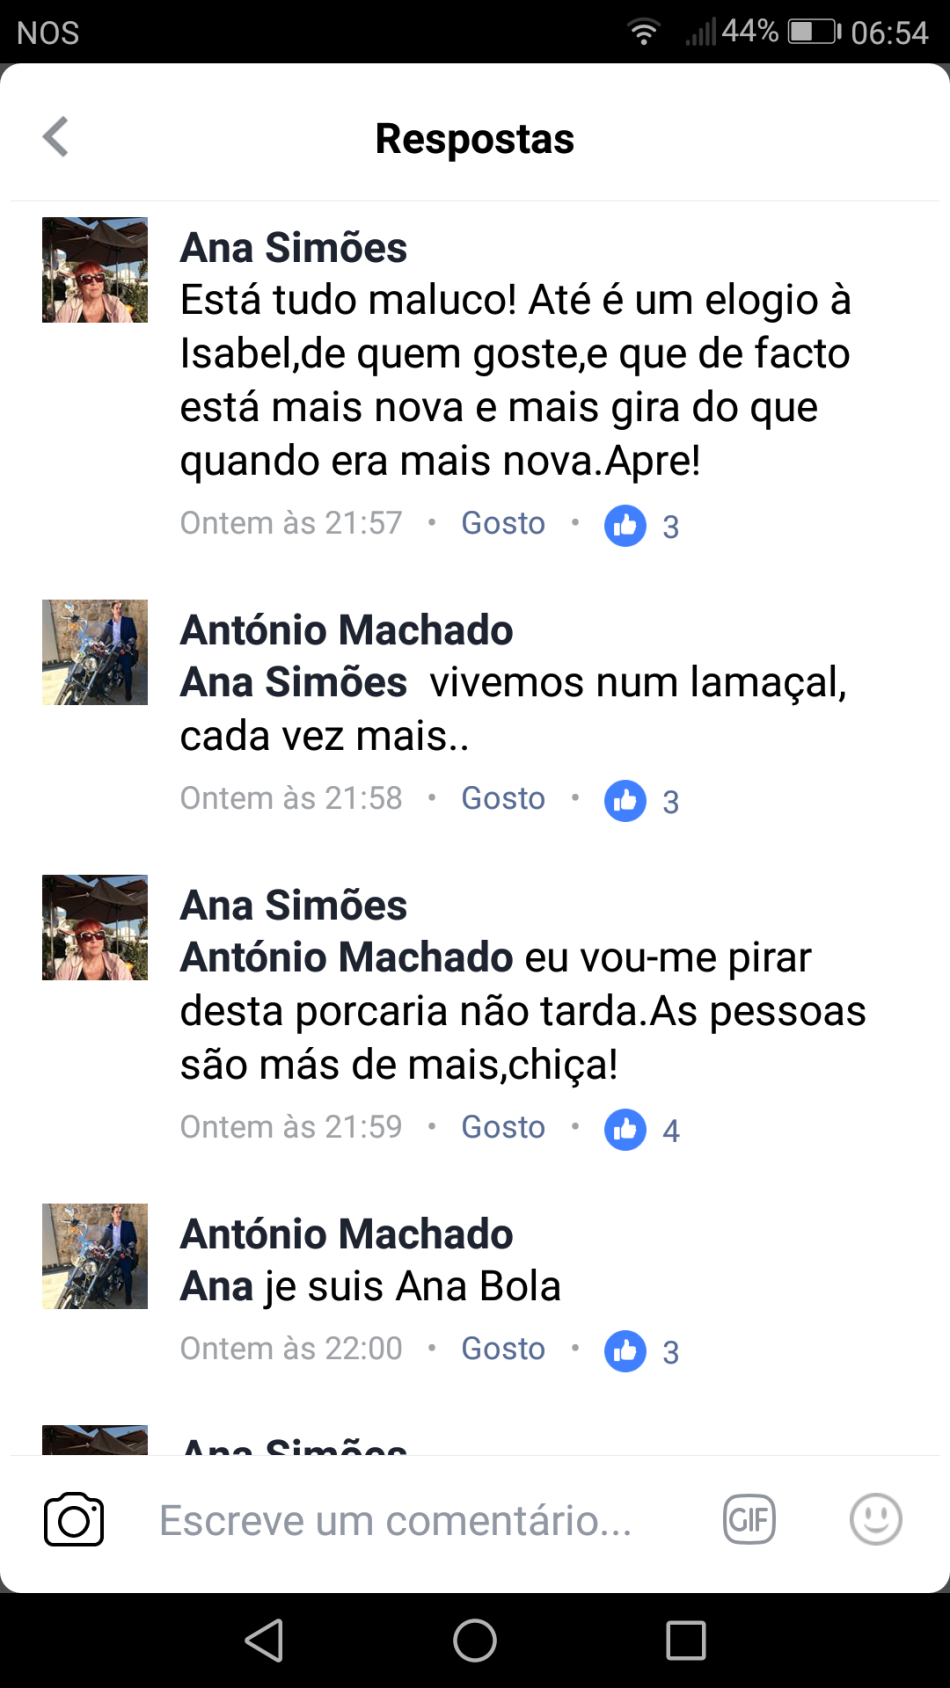 anabola002.png